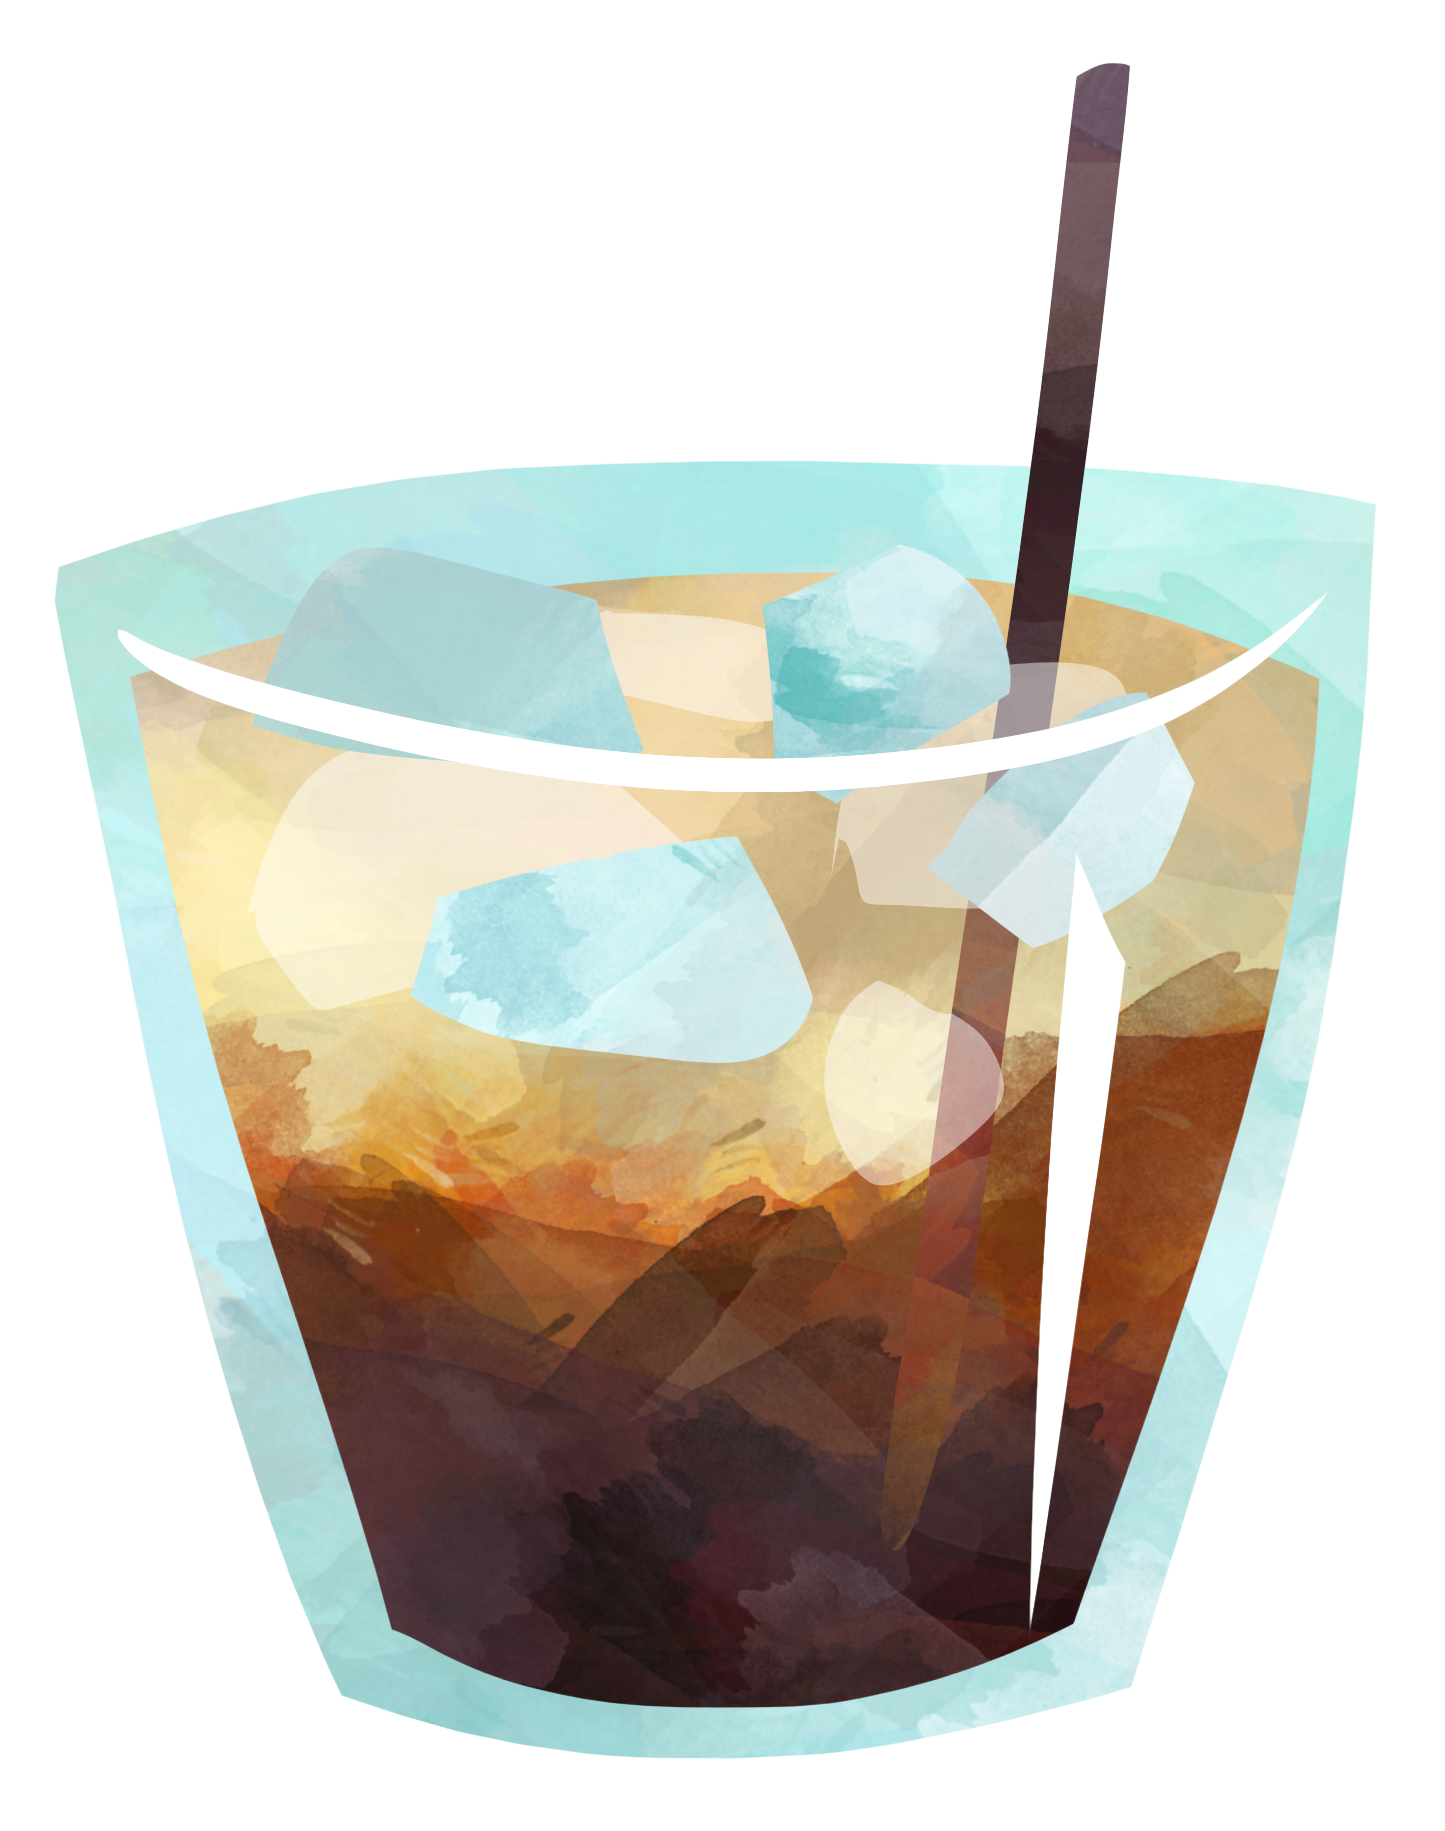 Cocktail with ice. In a low